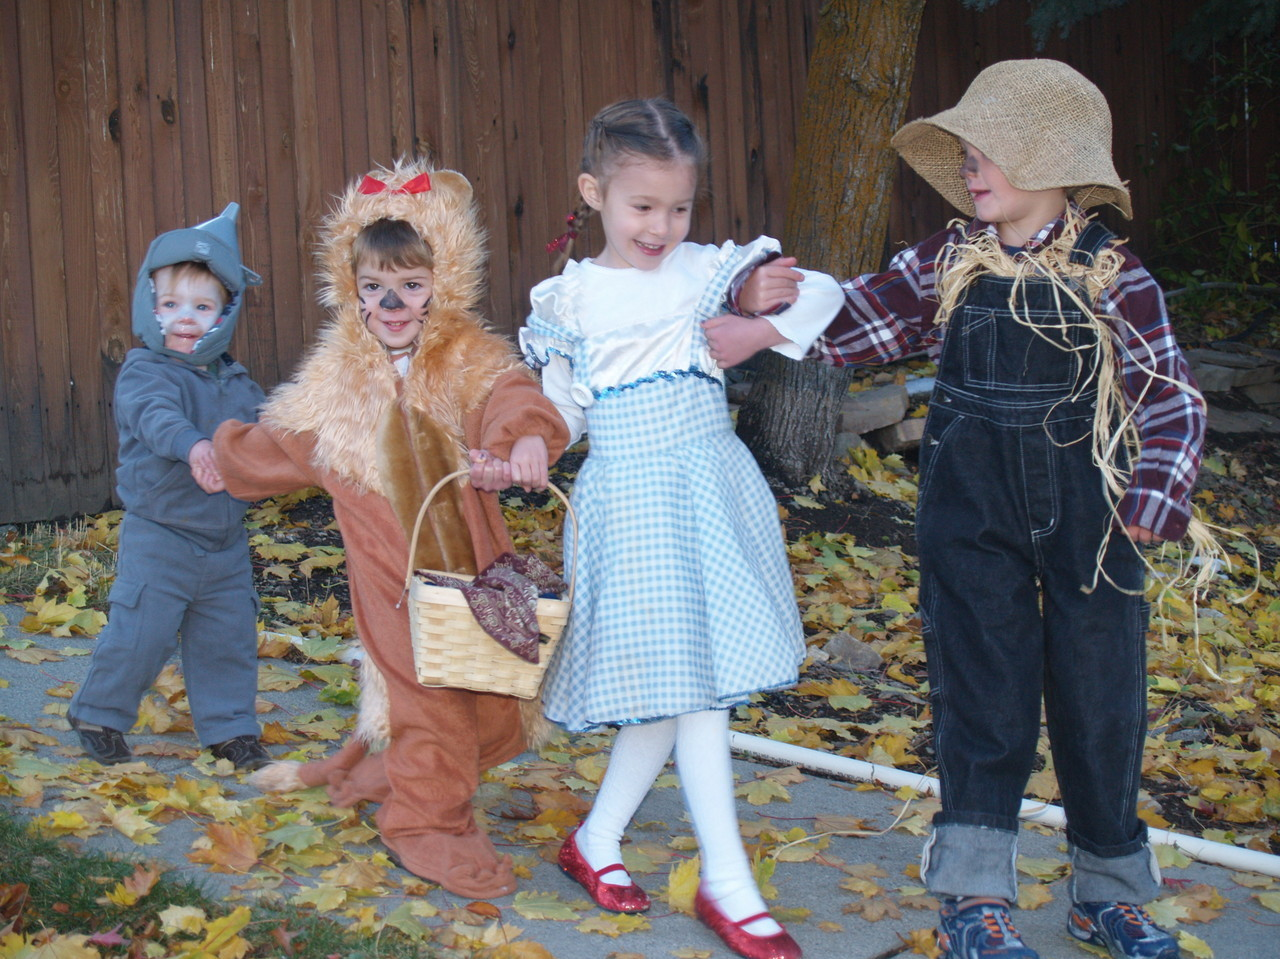 """'We're off to see the Wizard' ... my amazing children (5, 4, 2 and 1) sang as they acquired more and more candy from the neighbors."" -- Bethany Jones"